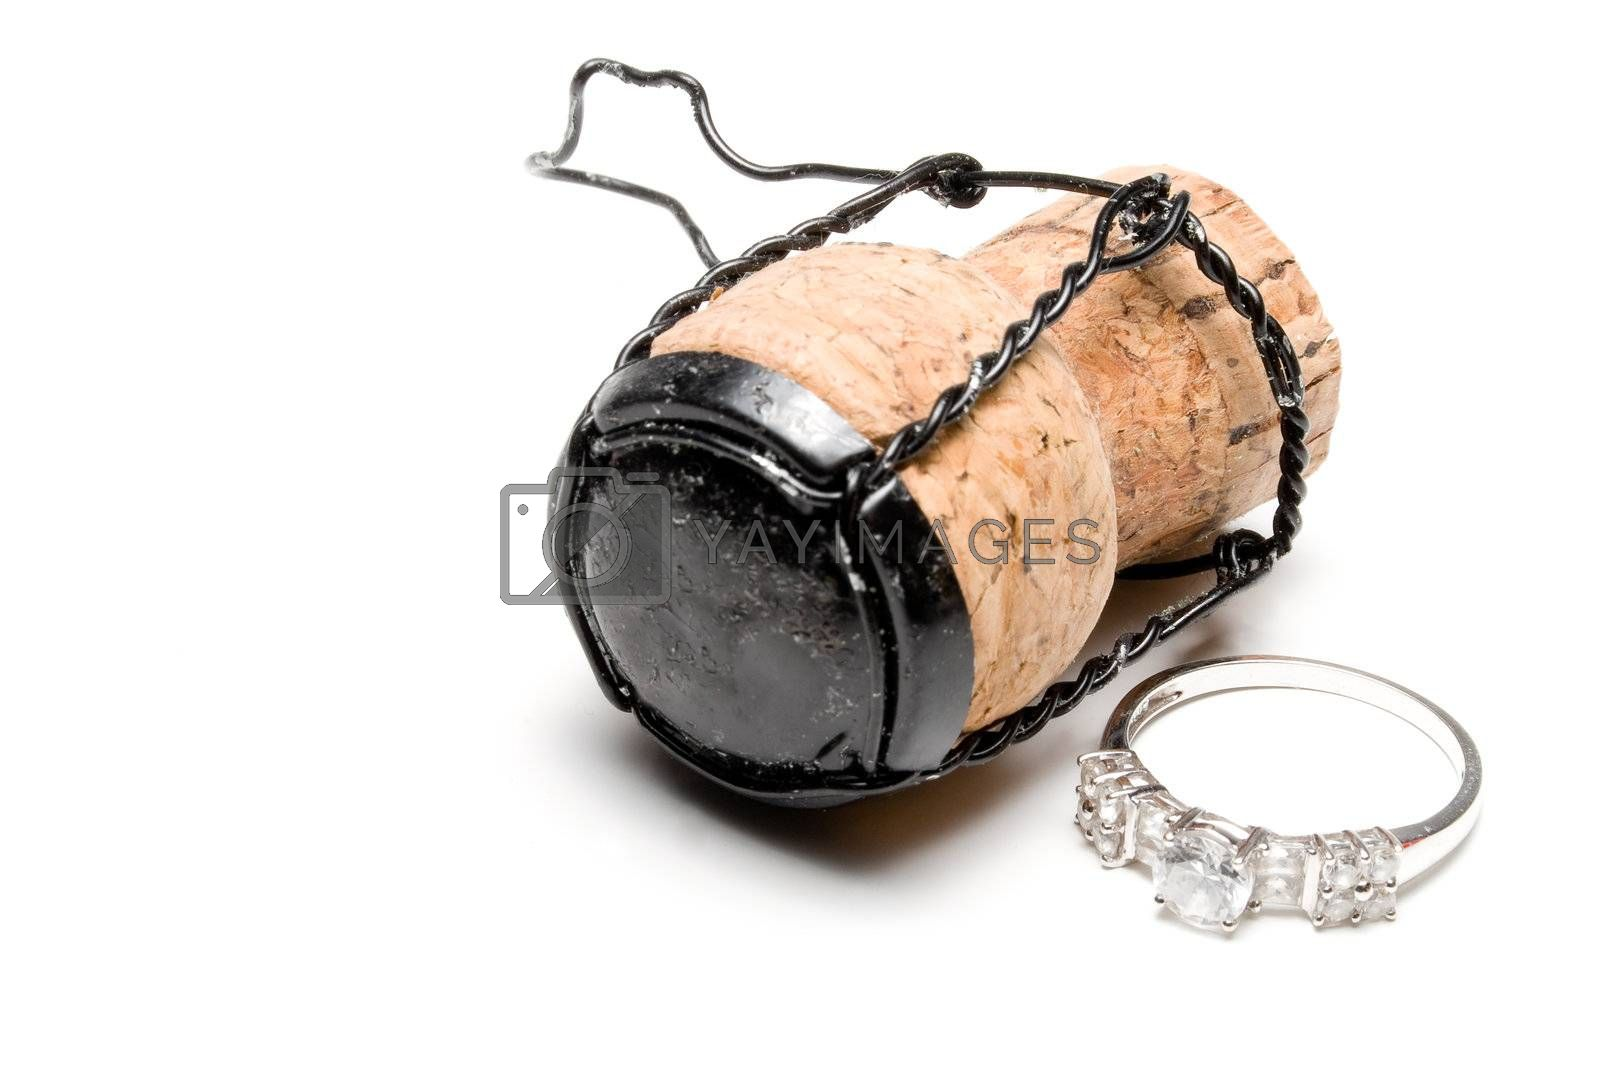 A wedding ring next to a champagne cork.